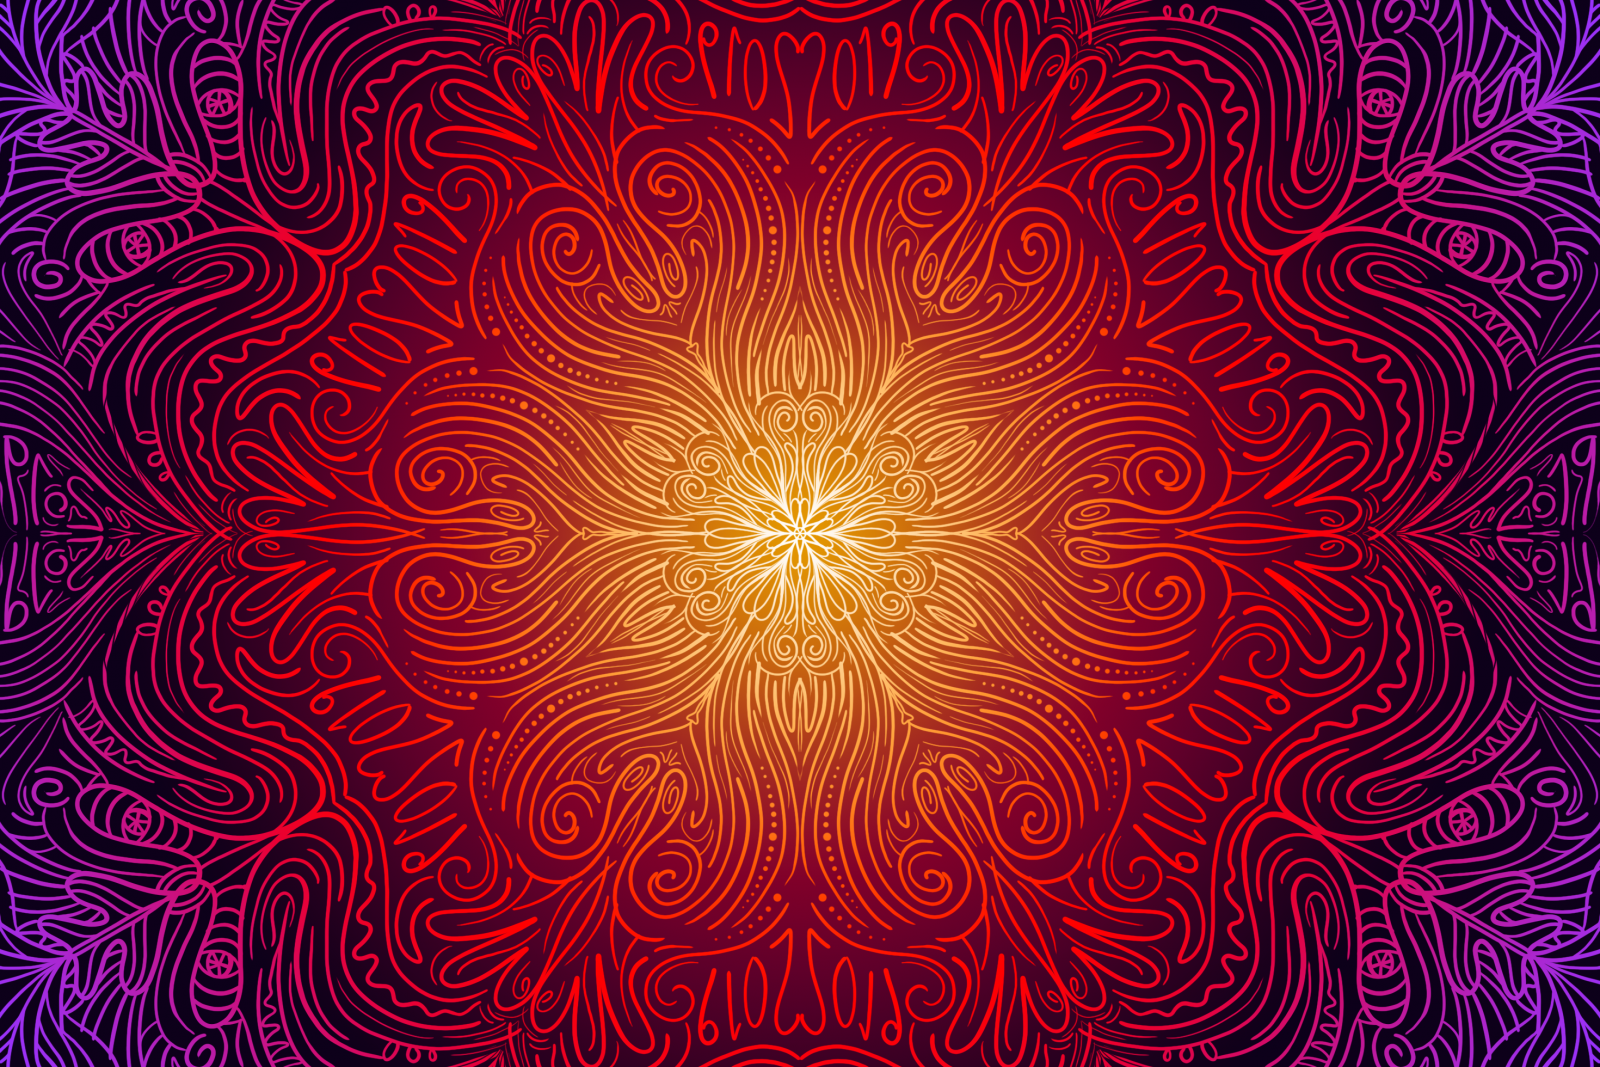 Mandala Patterns in Photoshop CC 2019, a deke com article